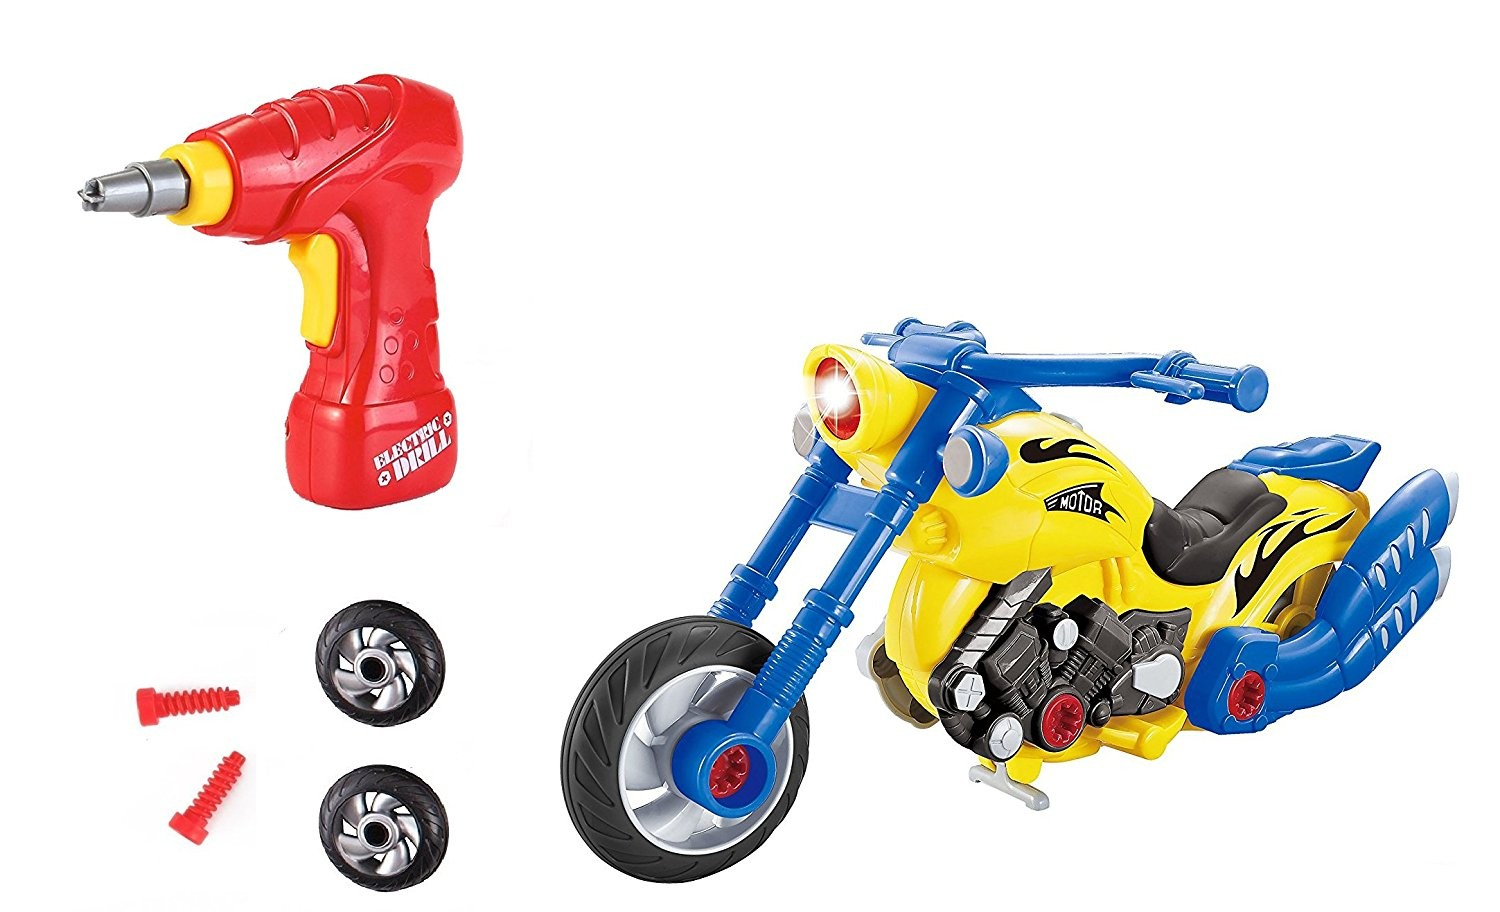 Cool Bike Take-A-Part Toy